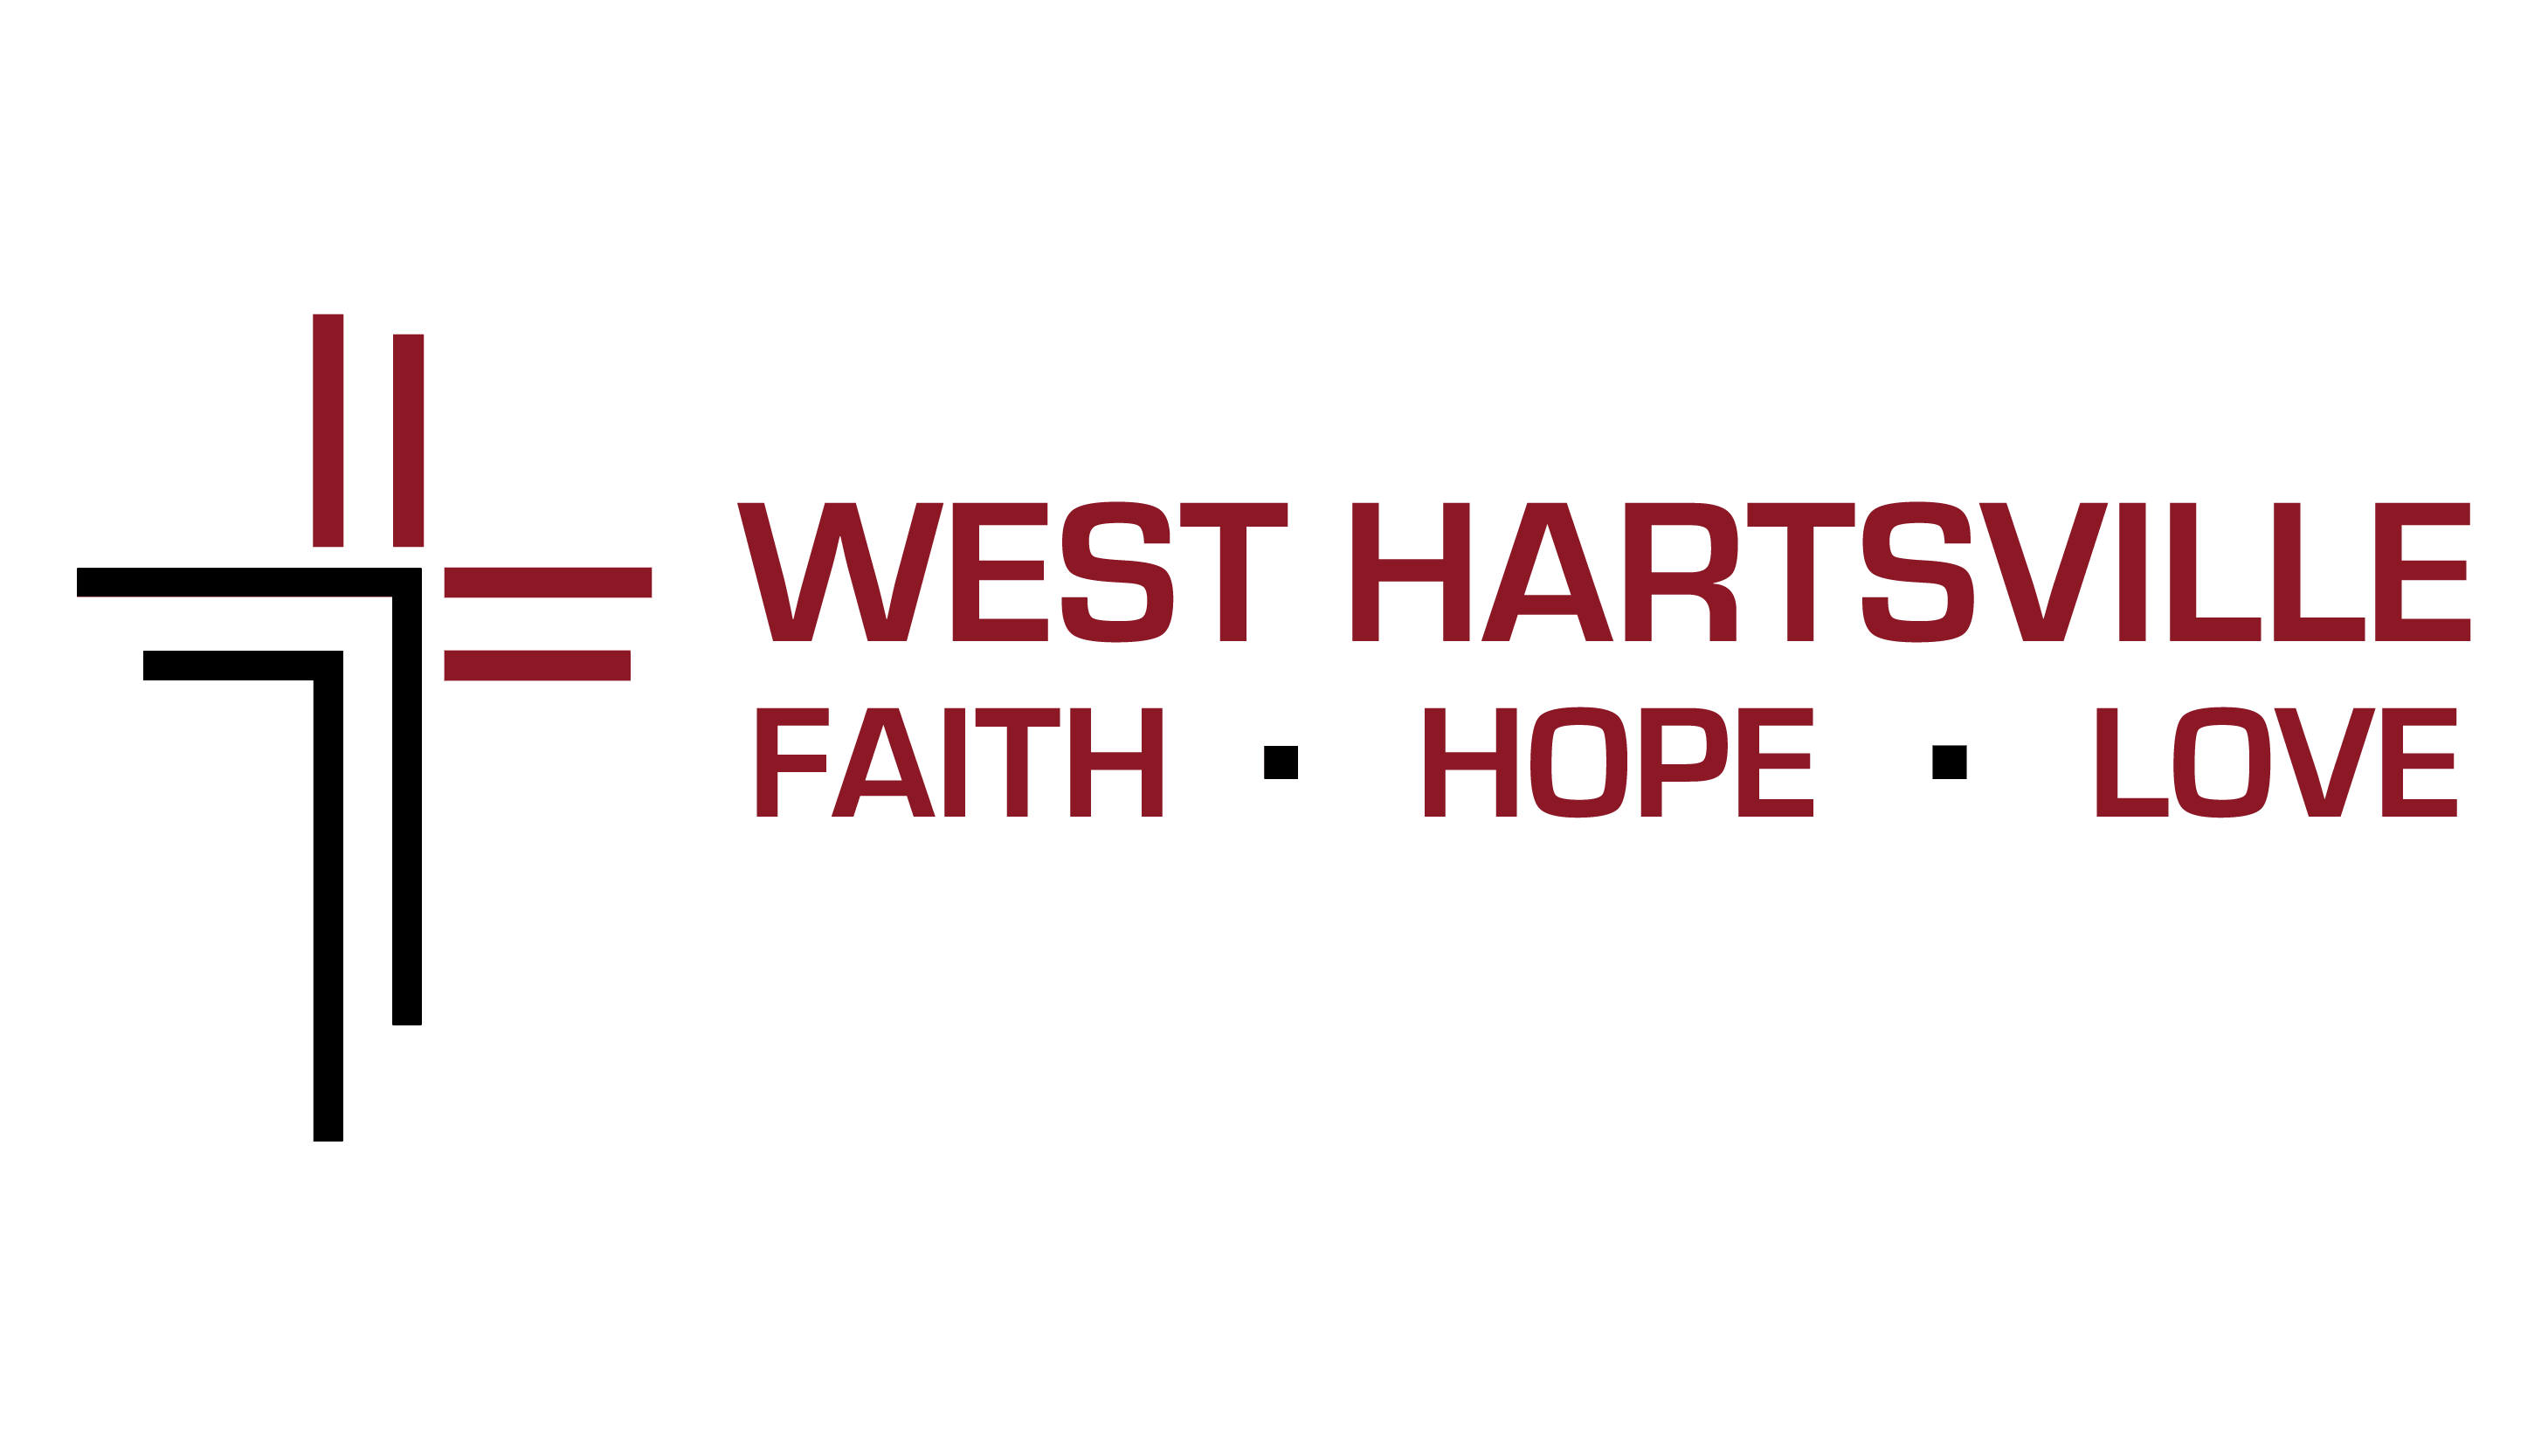 WHBC: Faith - Hope - Love